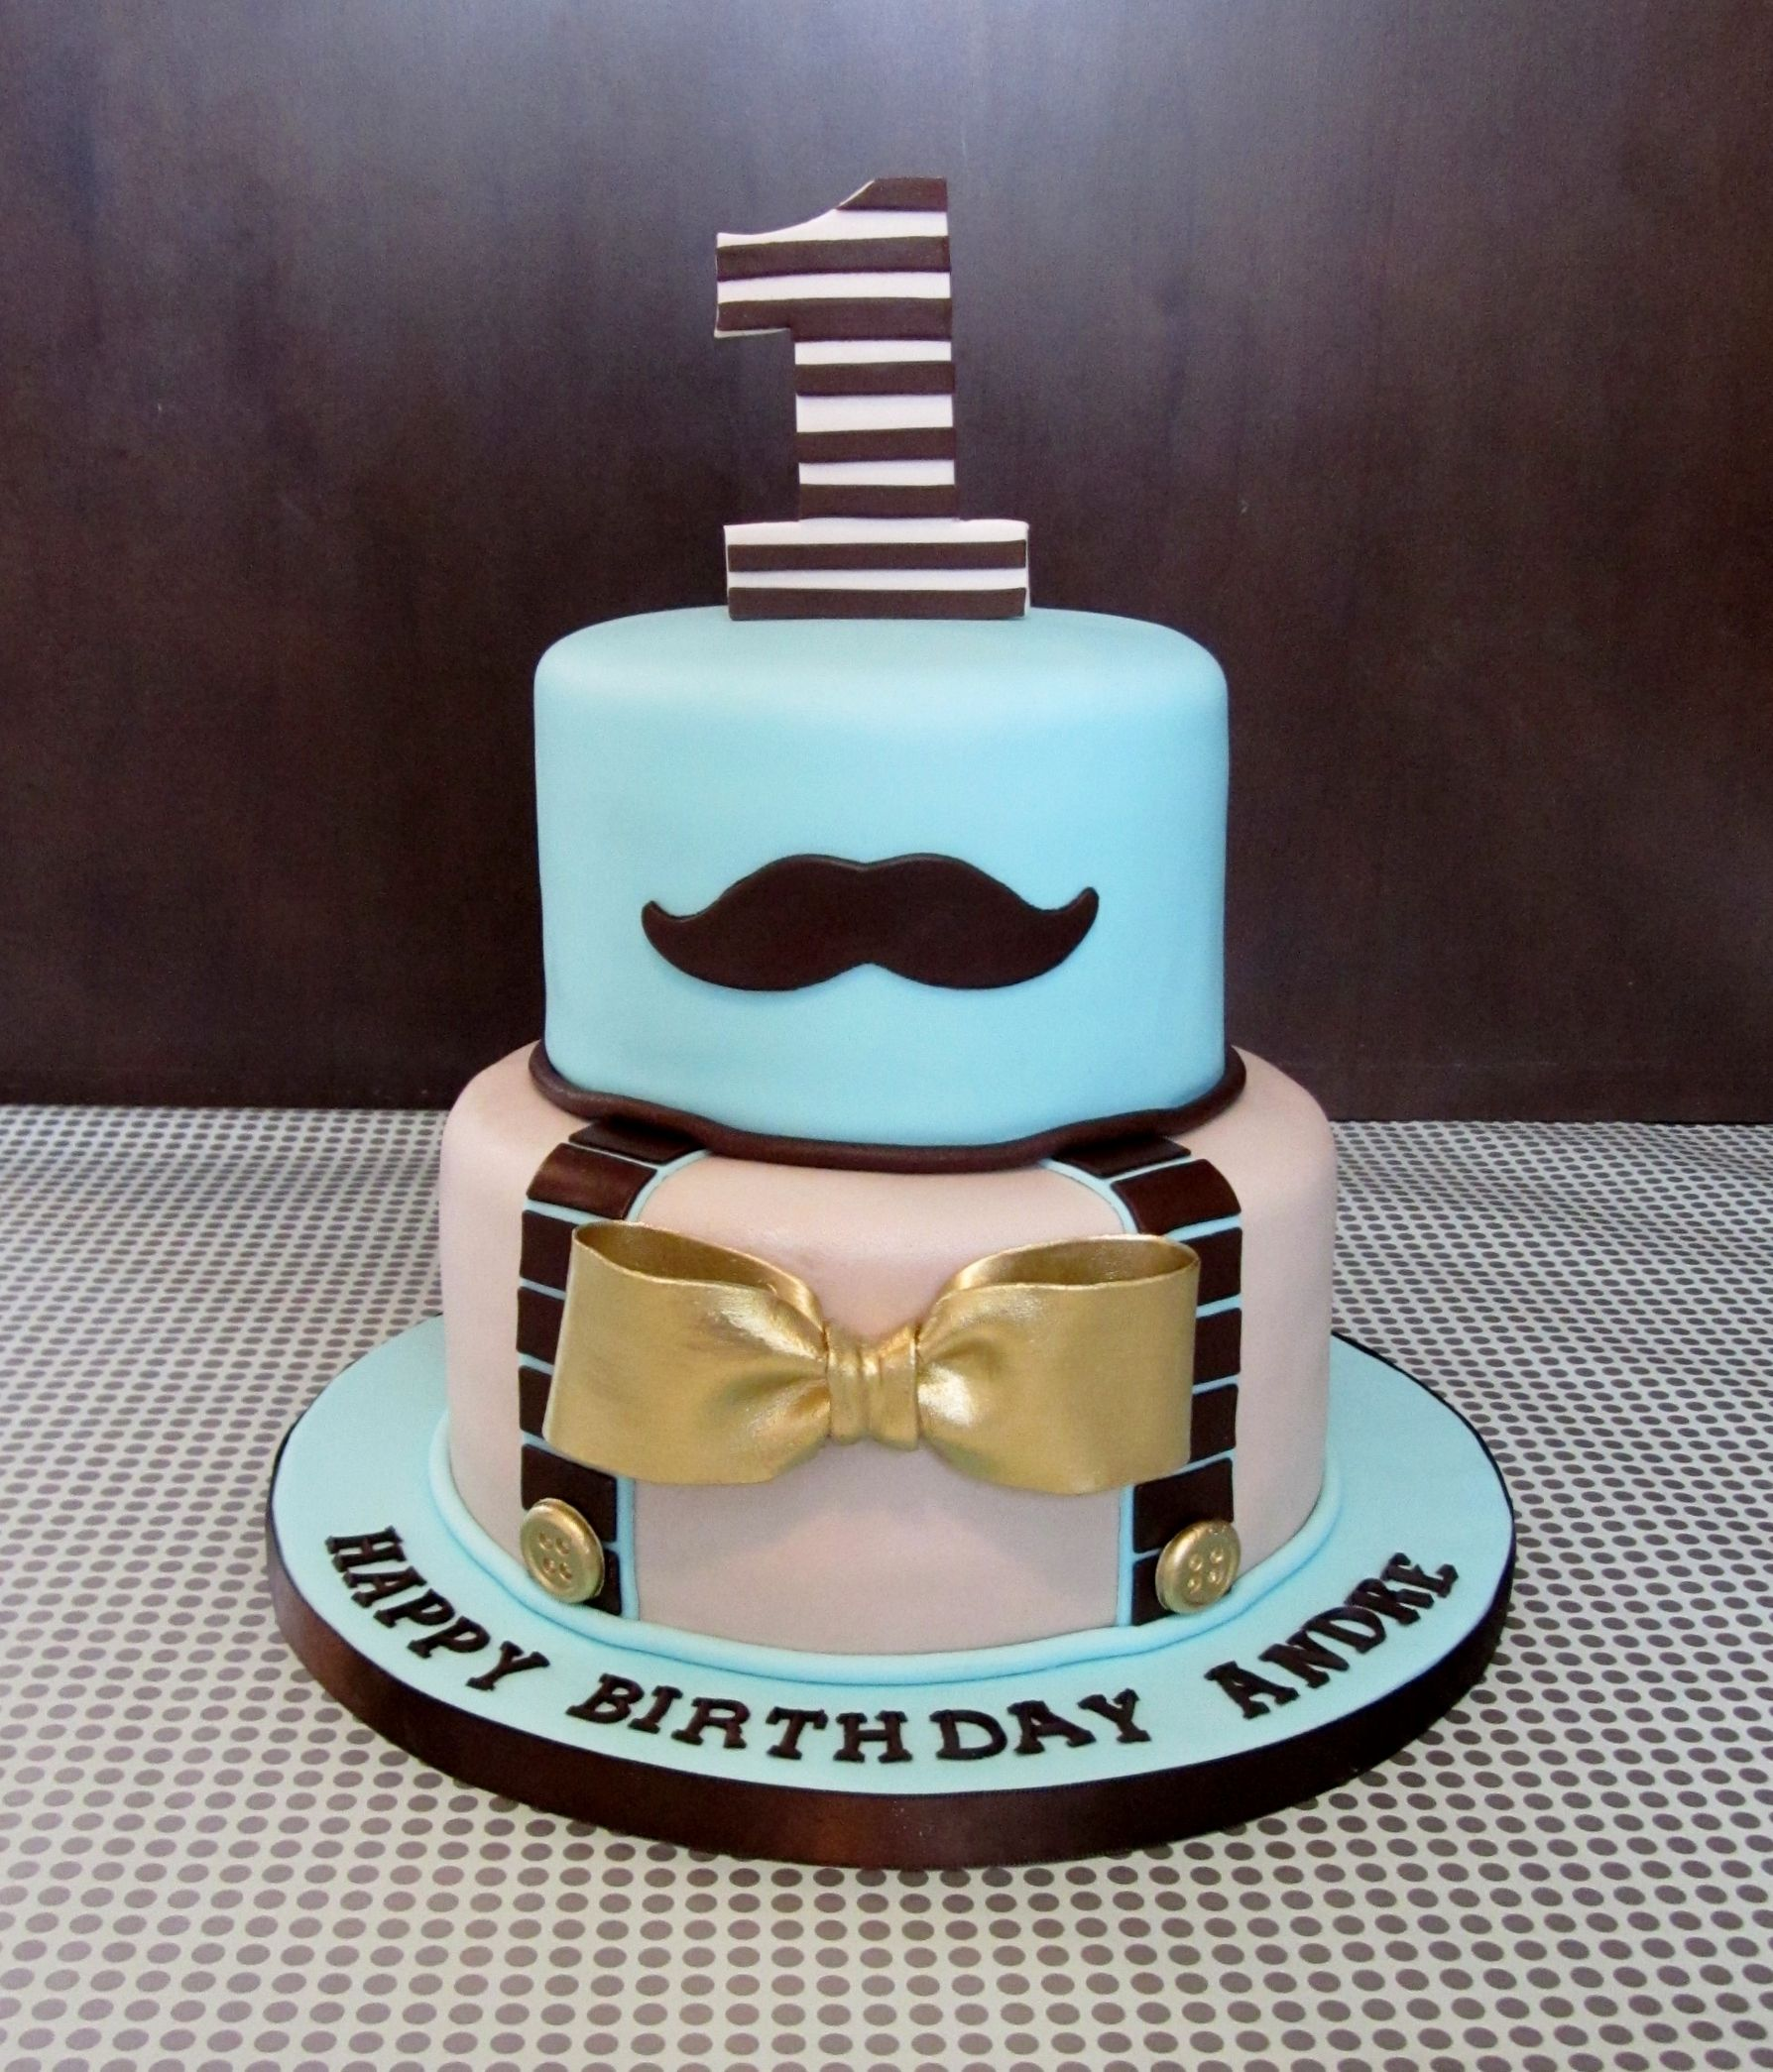 Little man birthday cake birthday ideas pinterest men birthday cakes men birthday and - Mens cake decorating ideas ...